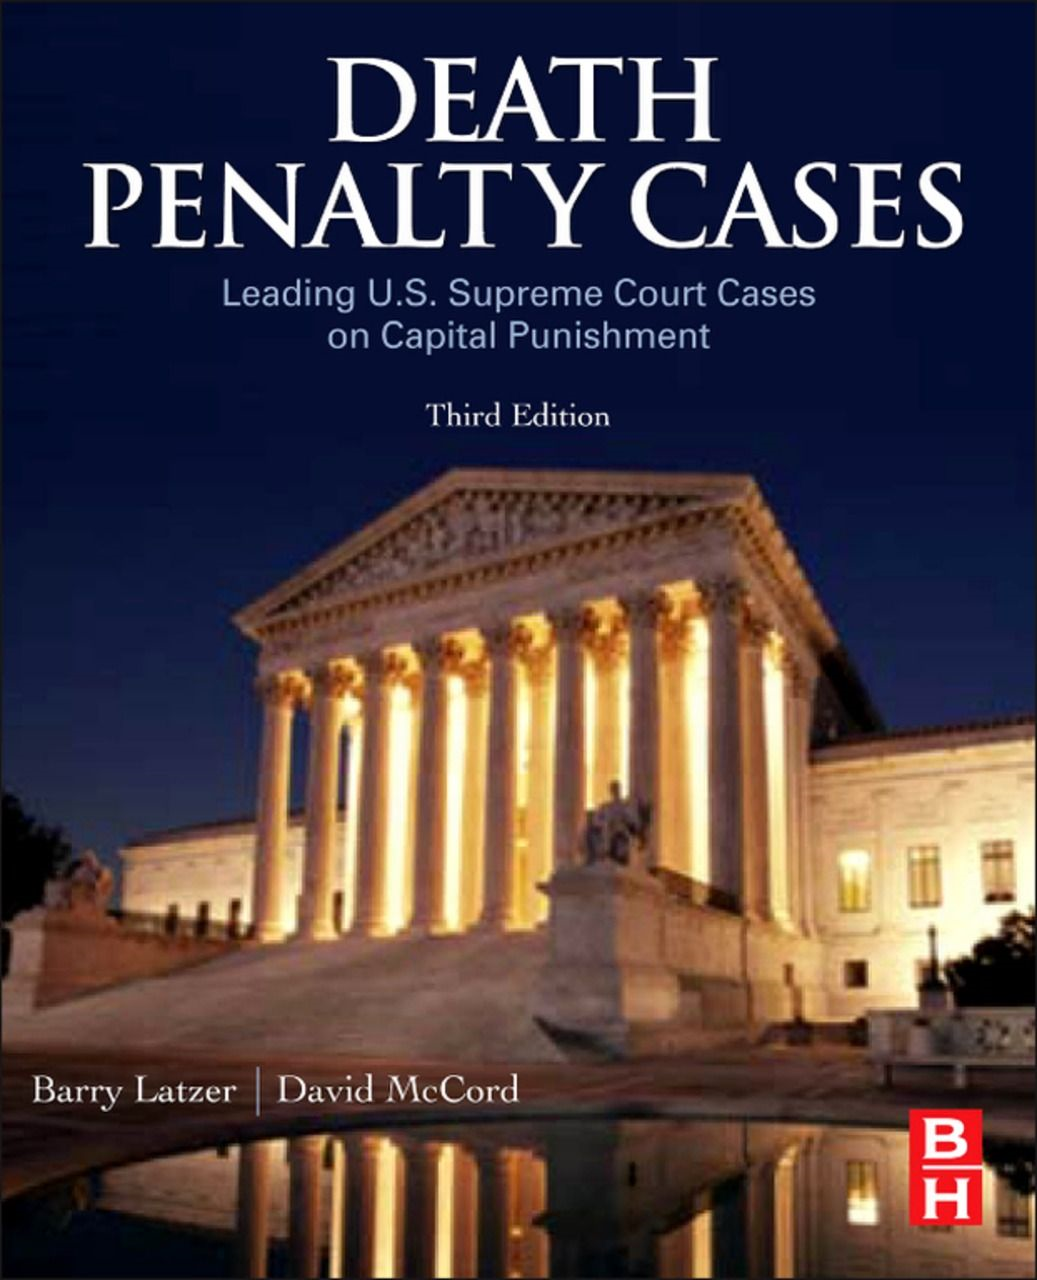 Death Penalty Cases: Leading U.S. Supreme Court Cases on Capital Punishment - Elsevier Science